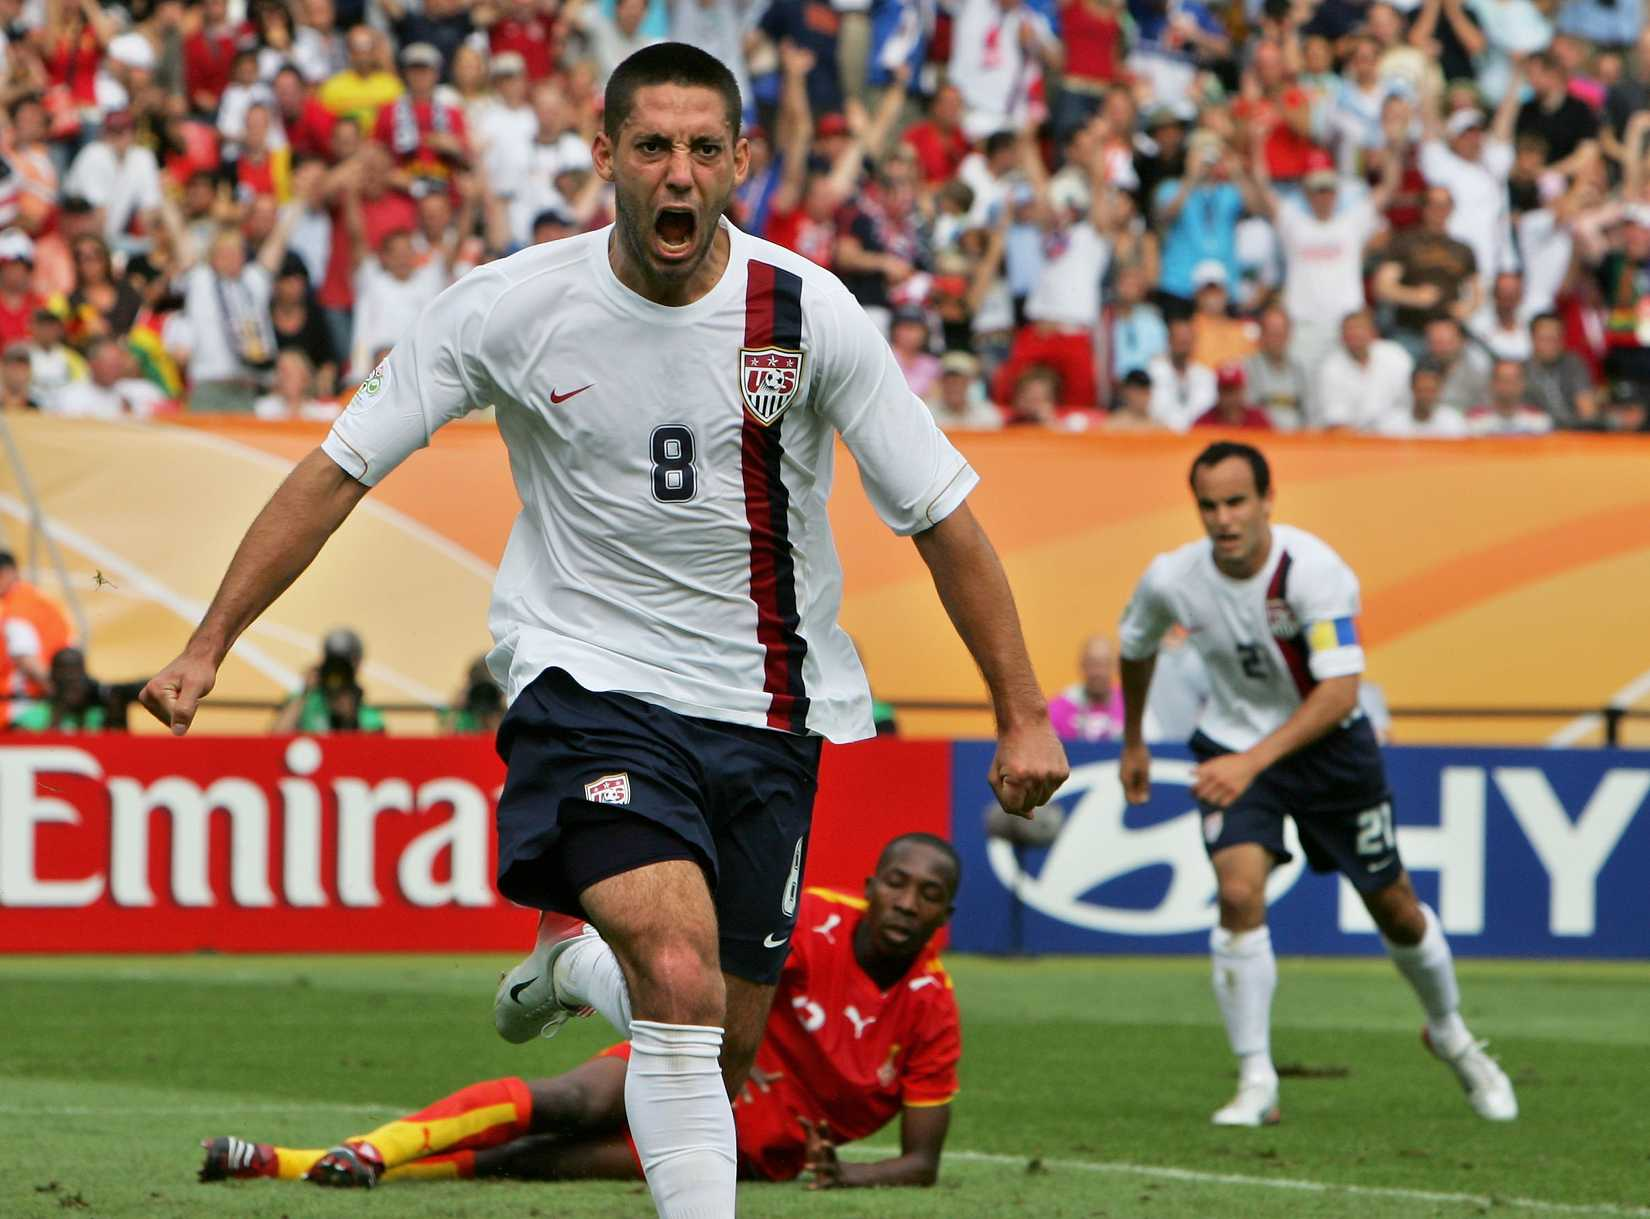 Clint Dempsey has been the best American soccer player since 2006.